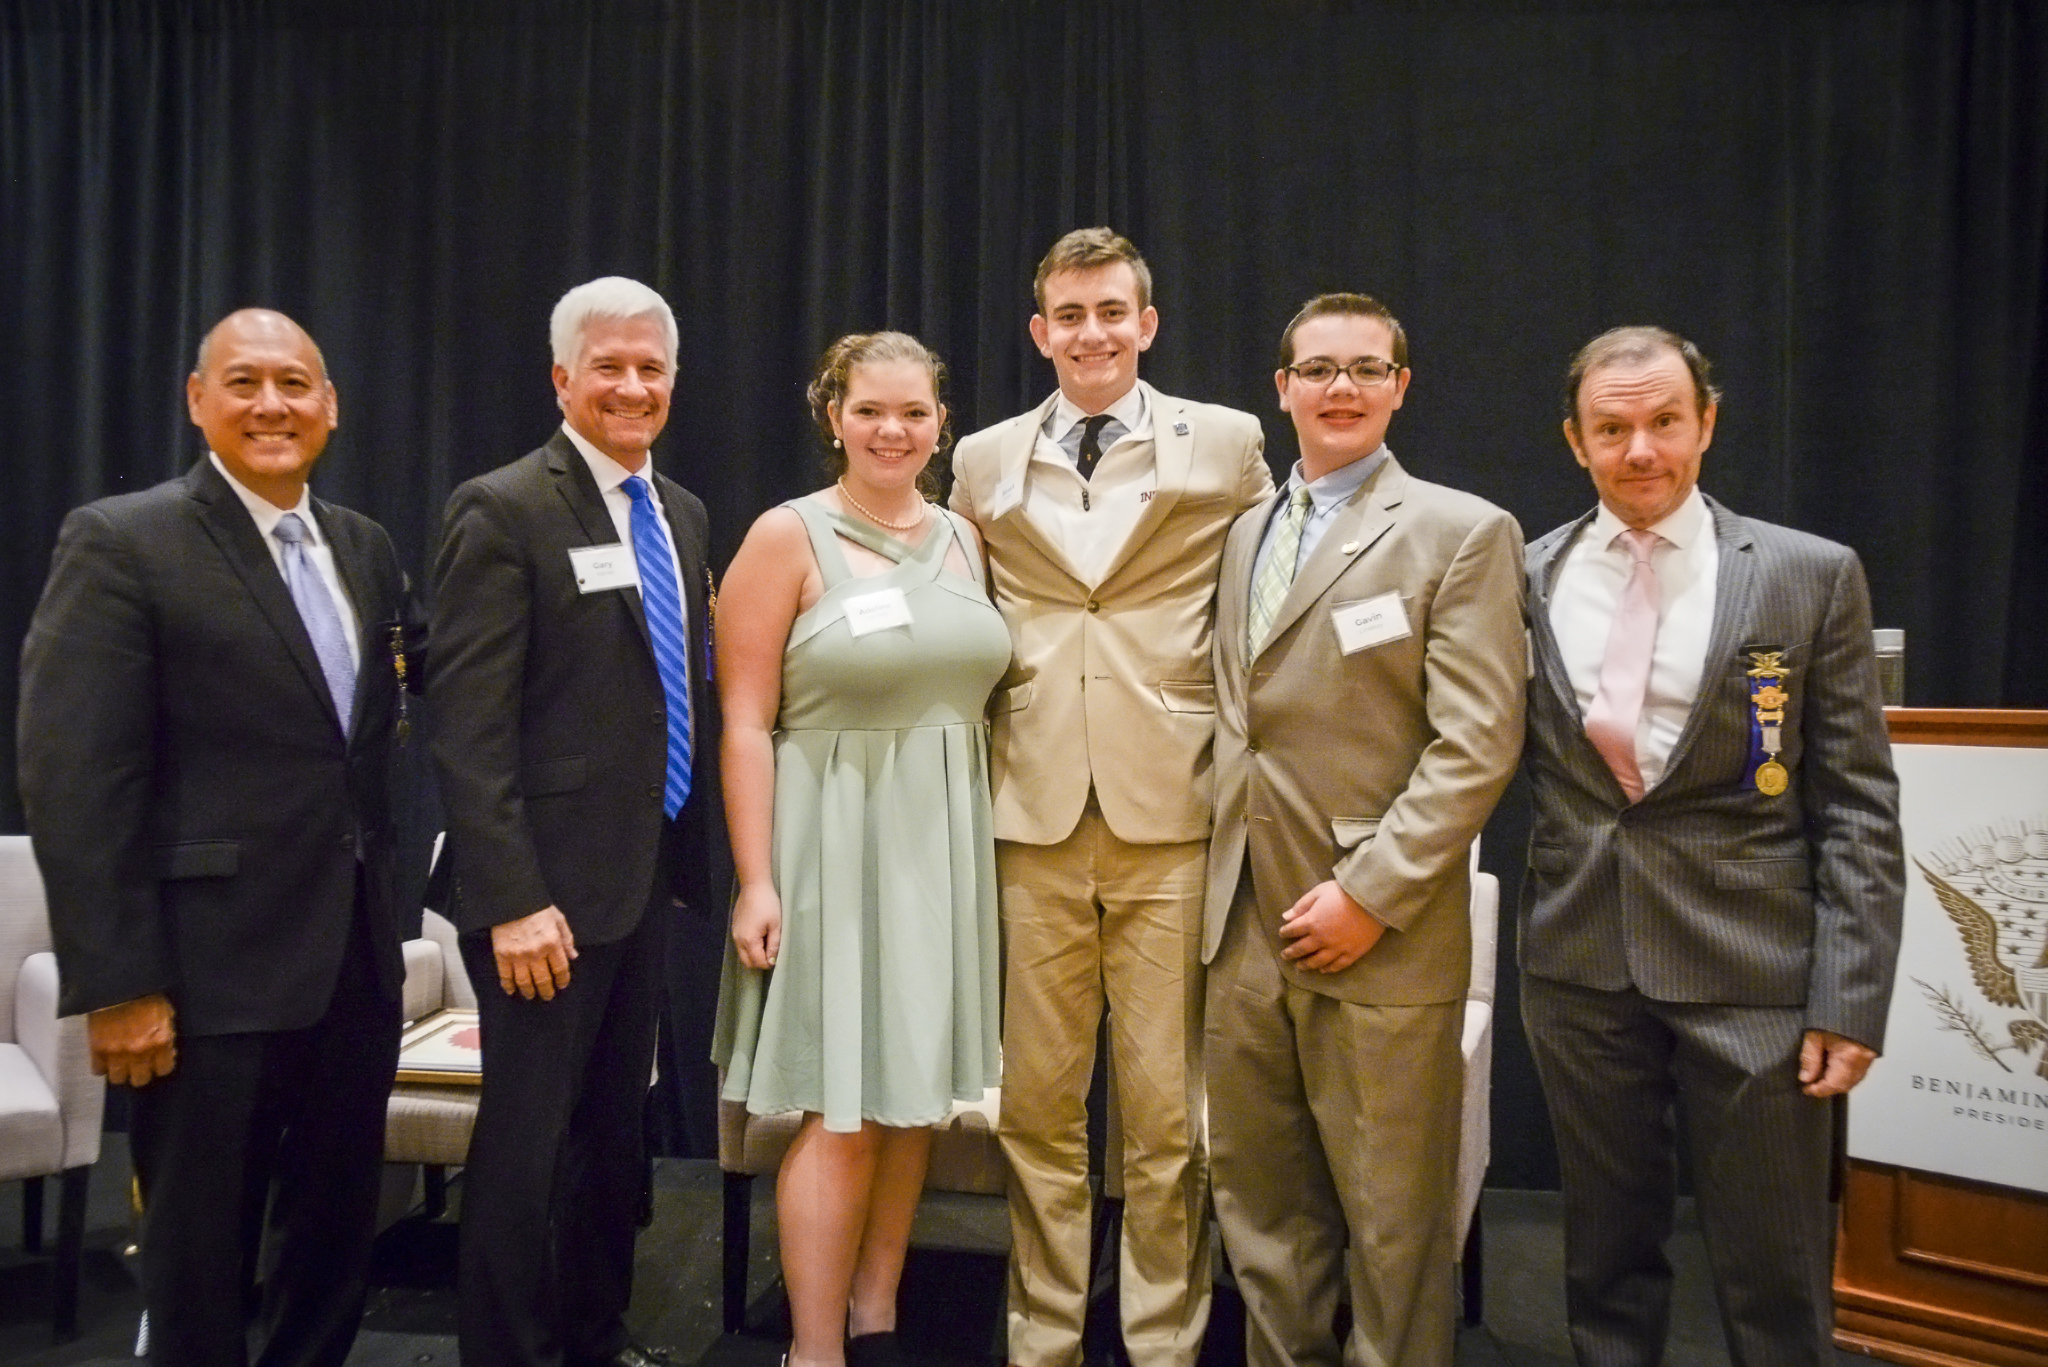 photograph of a group of visitors gathered, smiling for a photo at the mary tucker jasper speaker series.